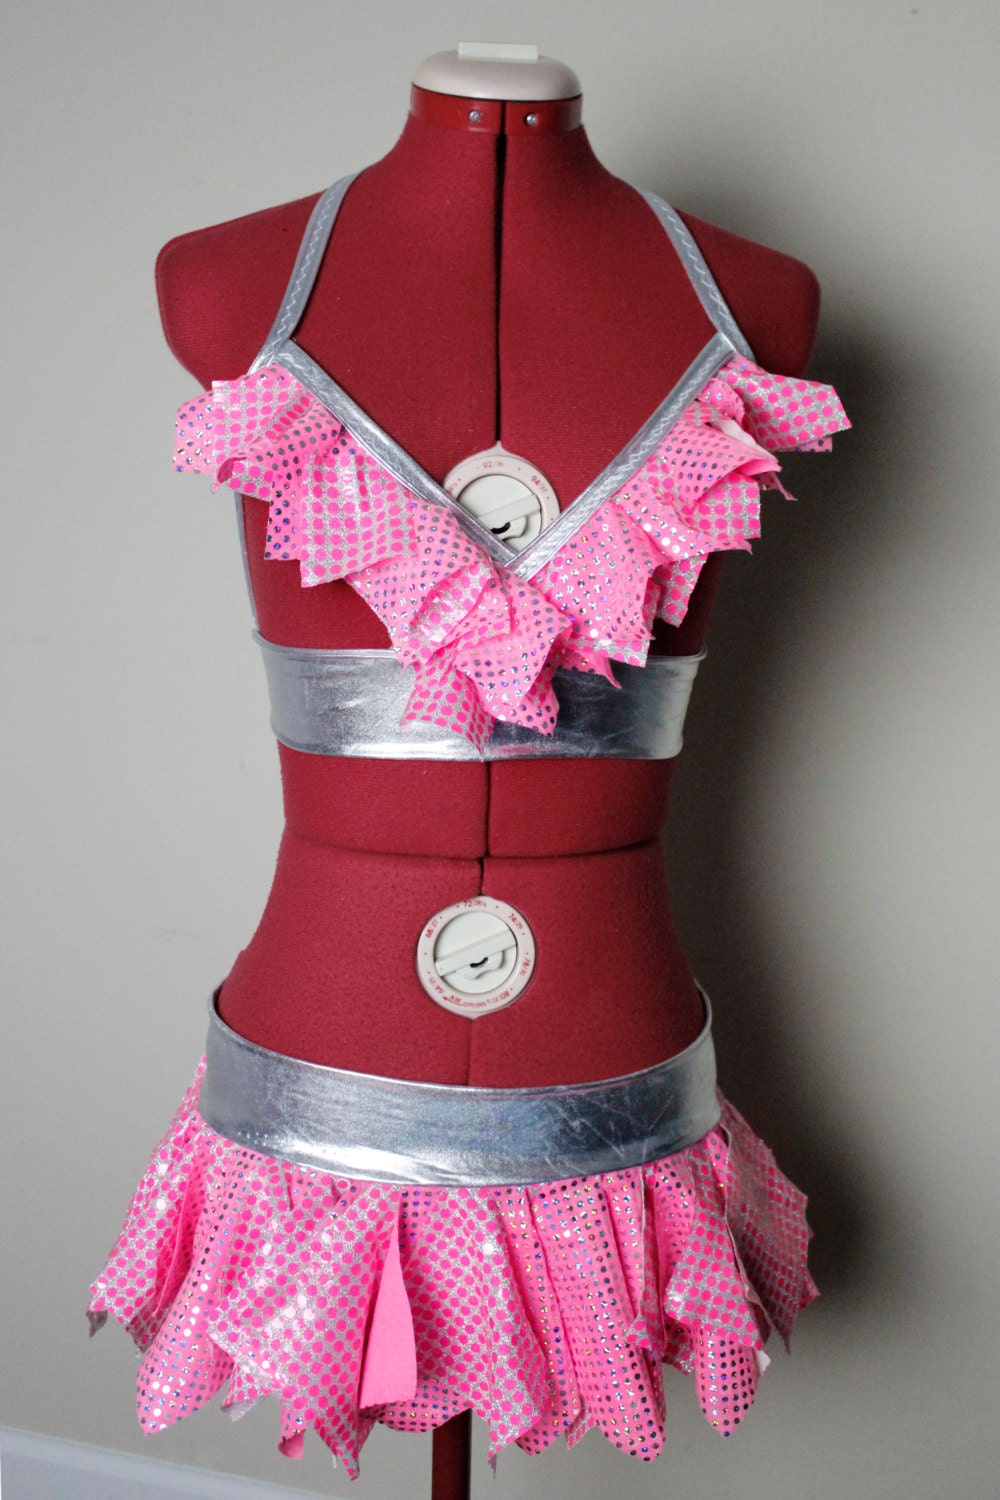 Flirty Girly Pink Stripper Outfit Cage Bra And Mini Skirt Rave